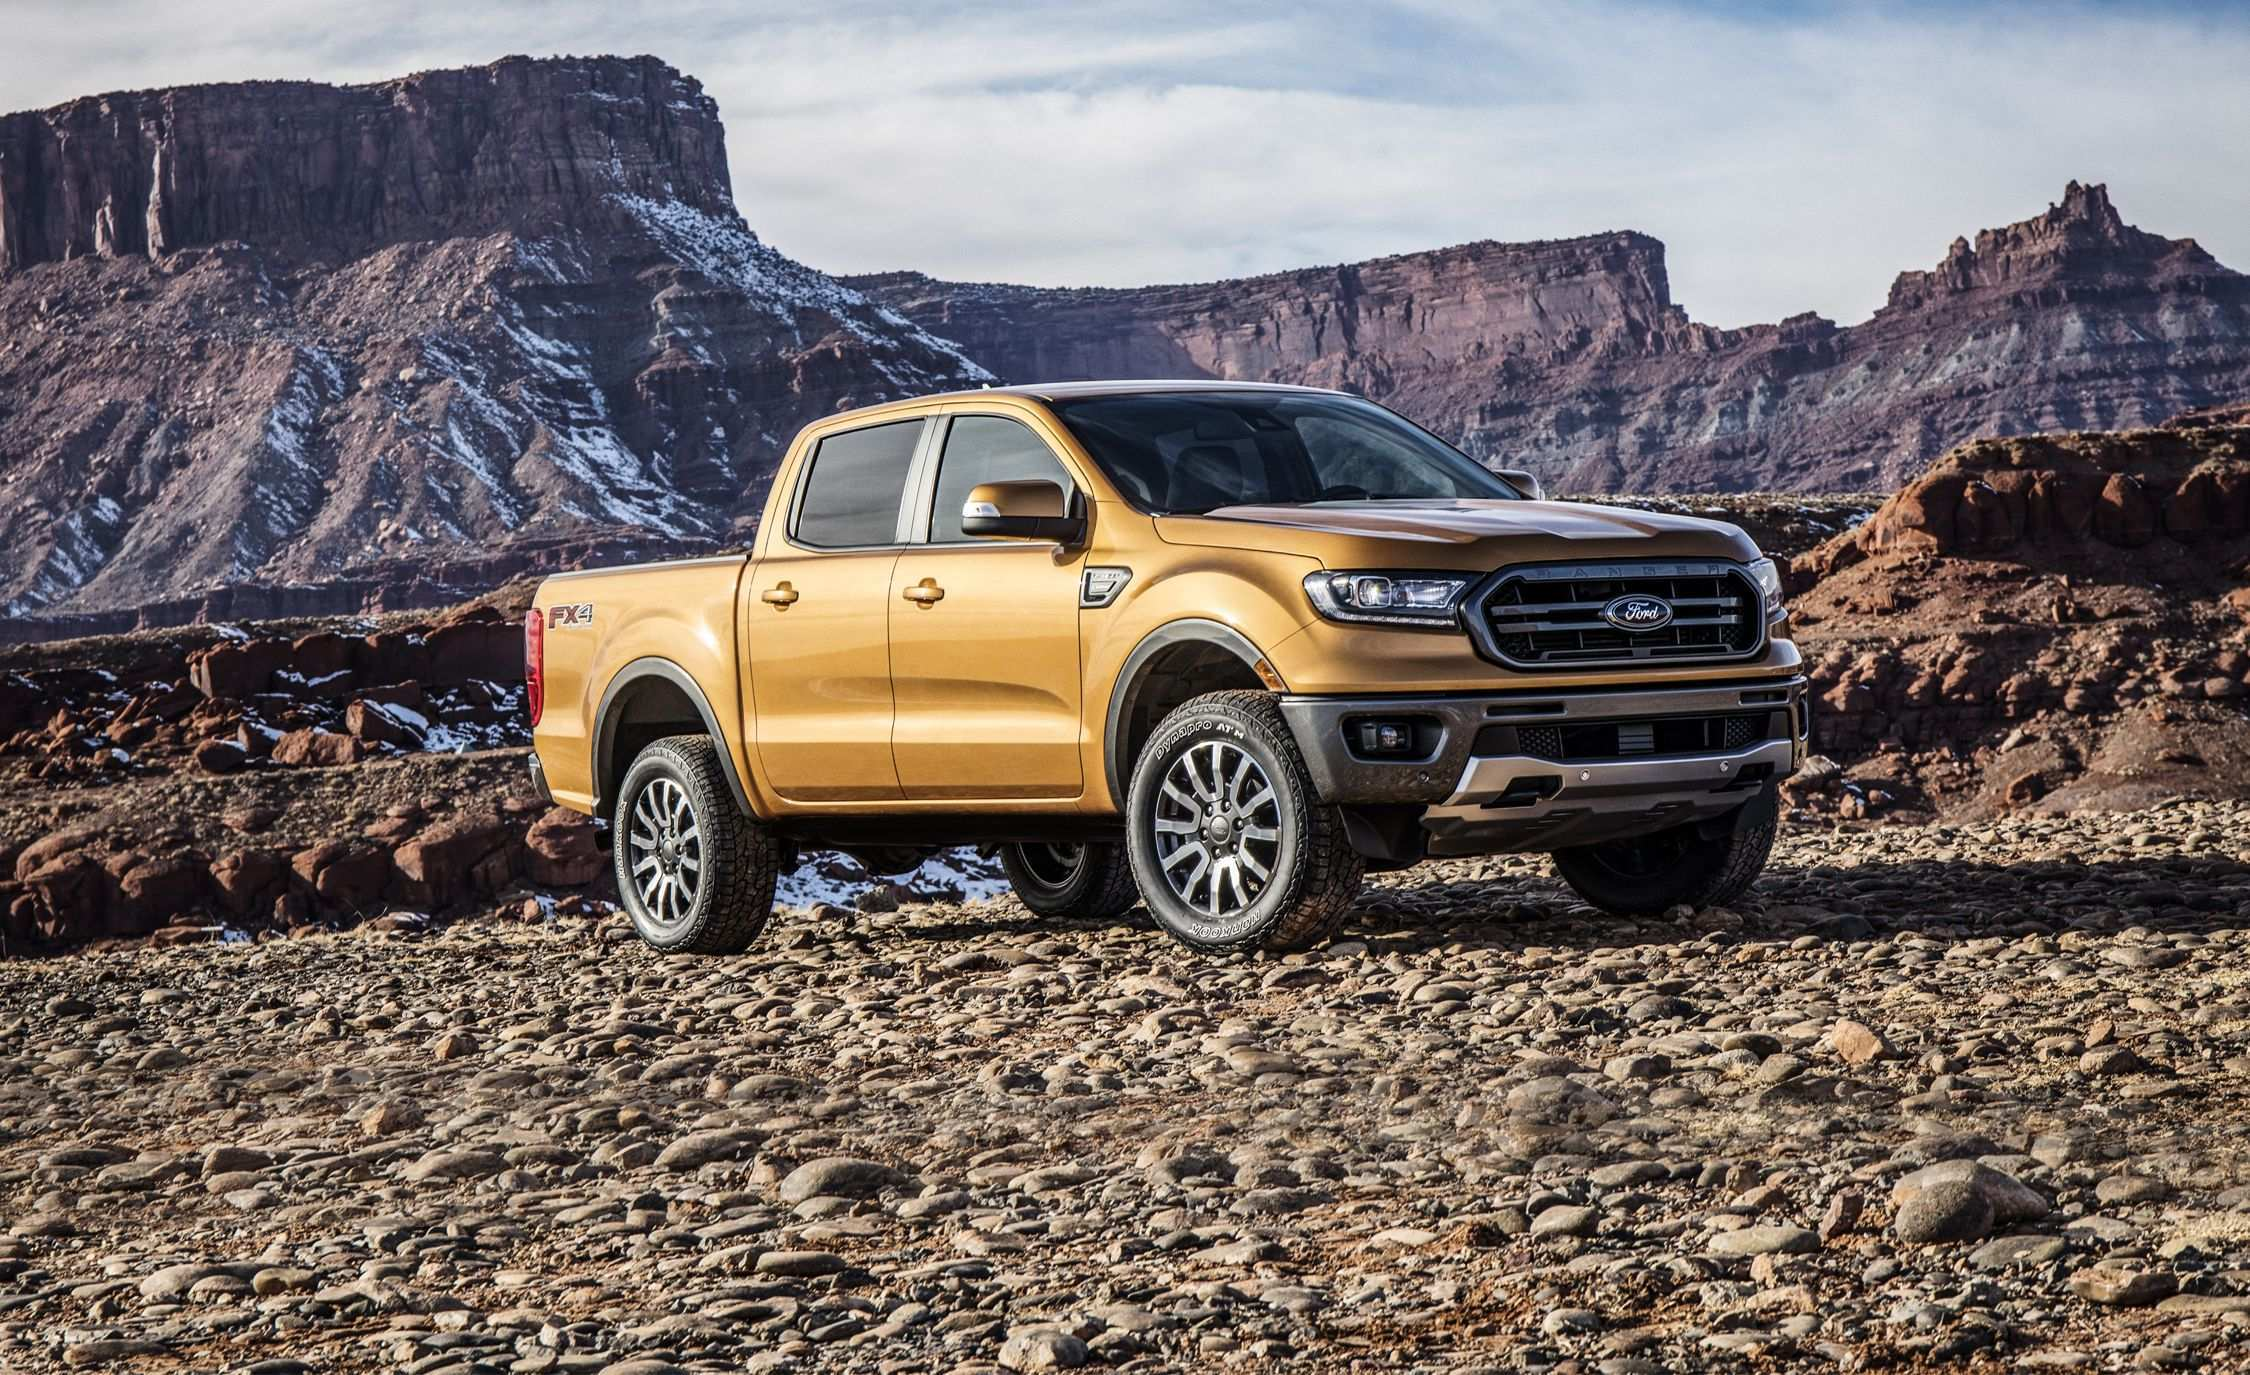 30 Concept of 2020 Ford Ranger Vs BMW Canyon Redesign by 2020 Ford Ranger Vs BMW Canyon